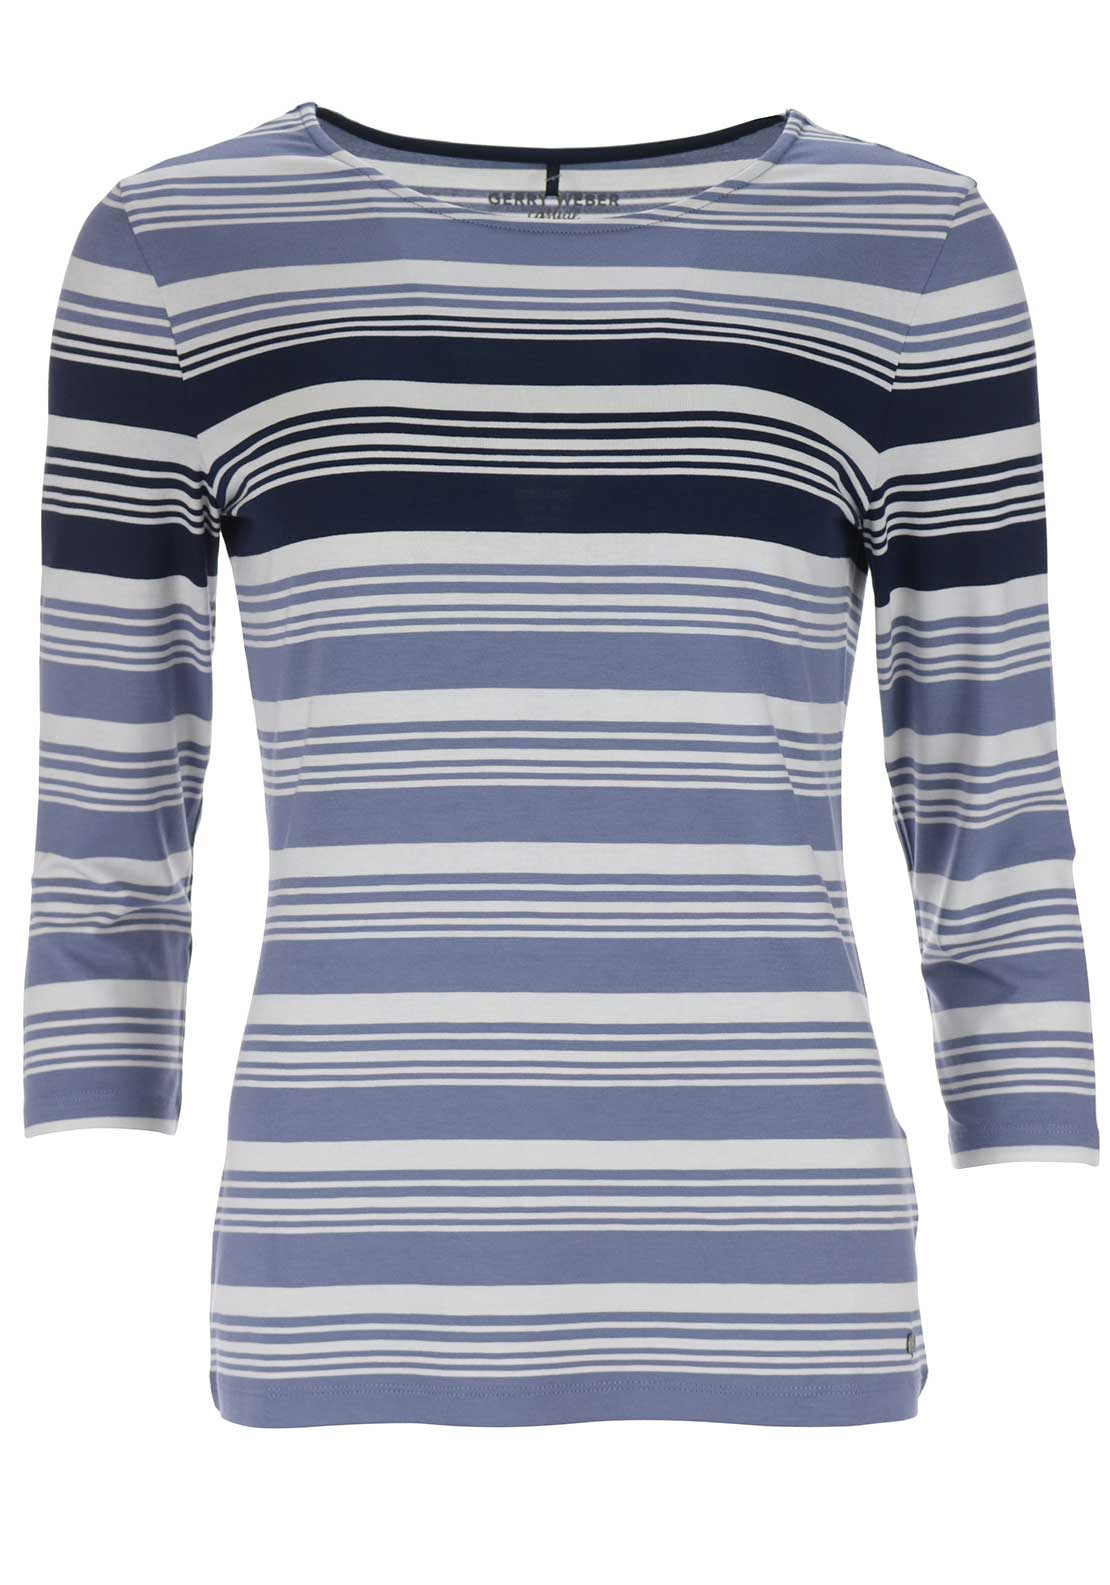 Gerry Weber Striped Cropped Sleeve Top, Blue